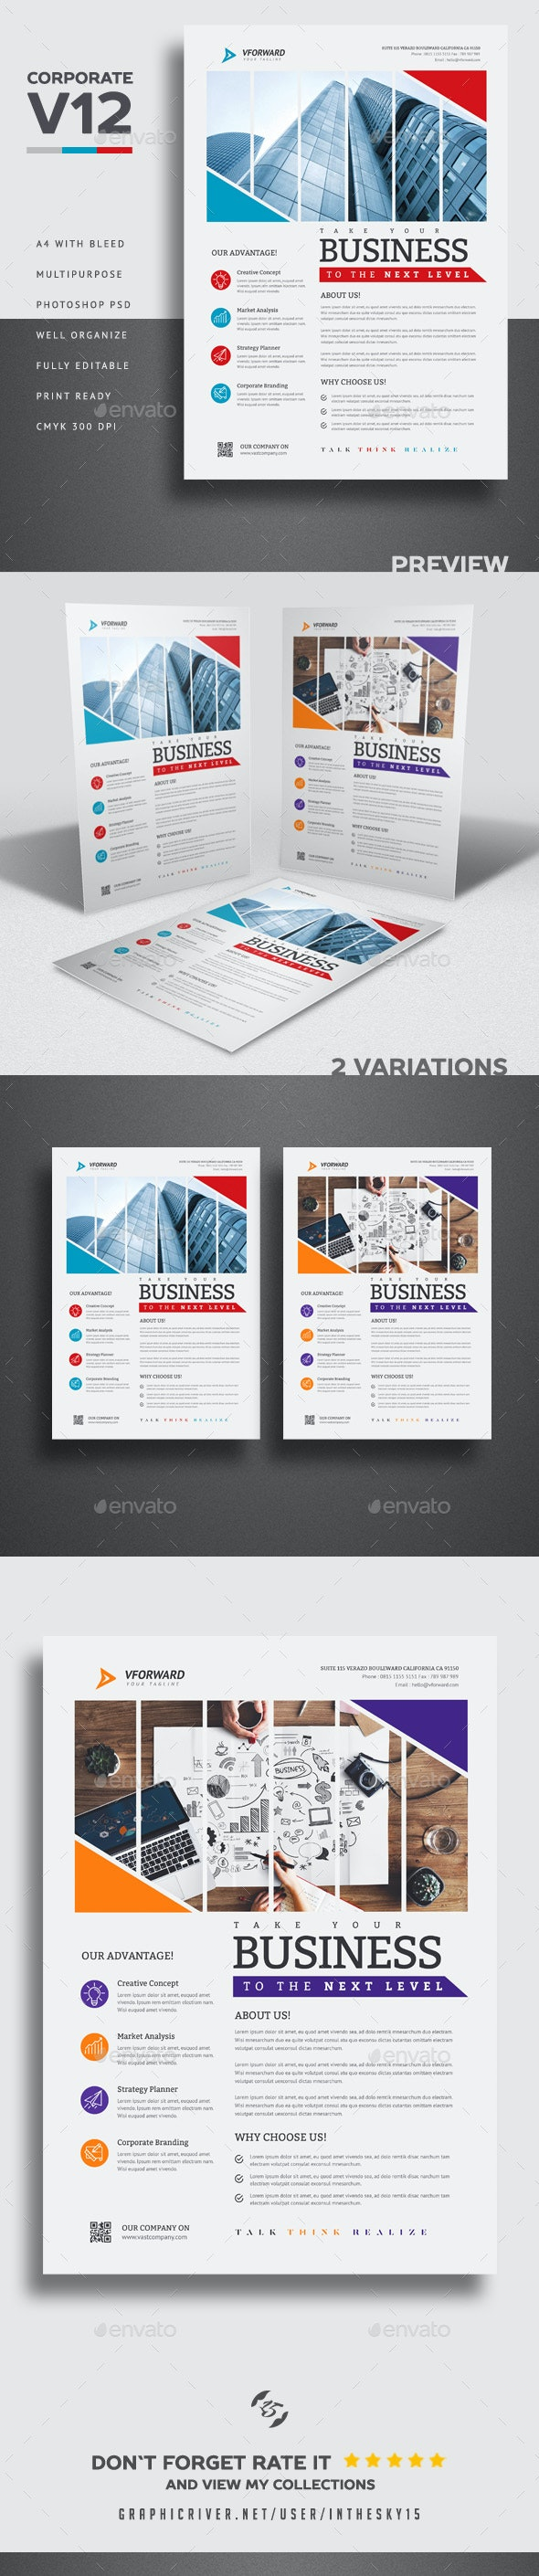 Corporate V12 Flyer - Corporate Flyers